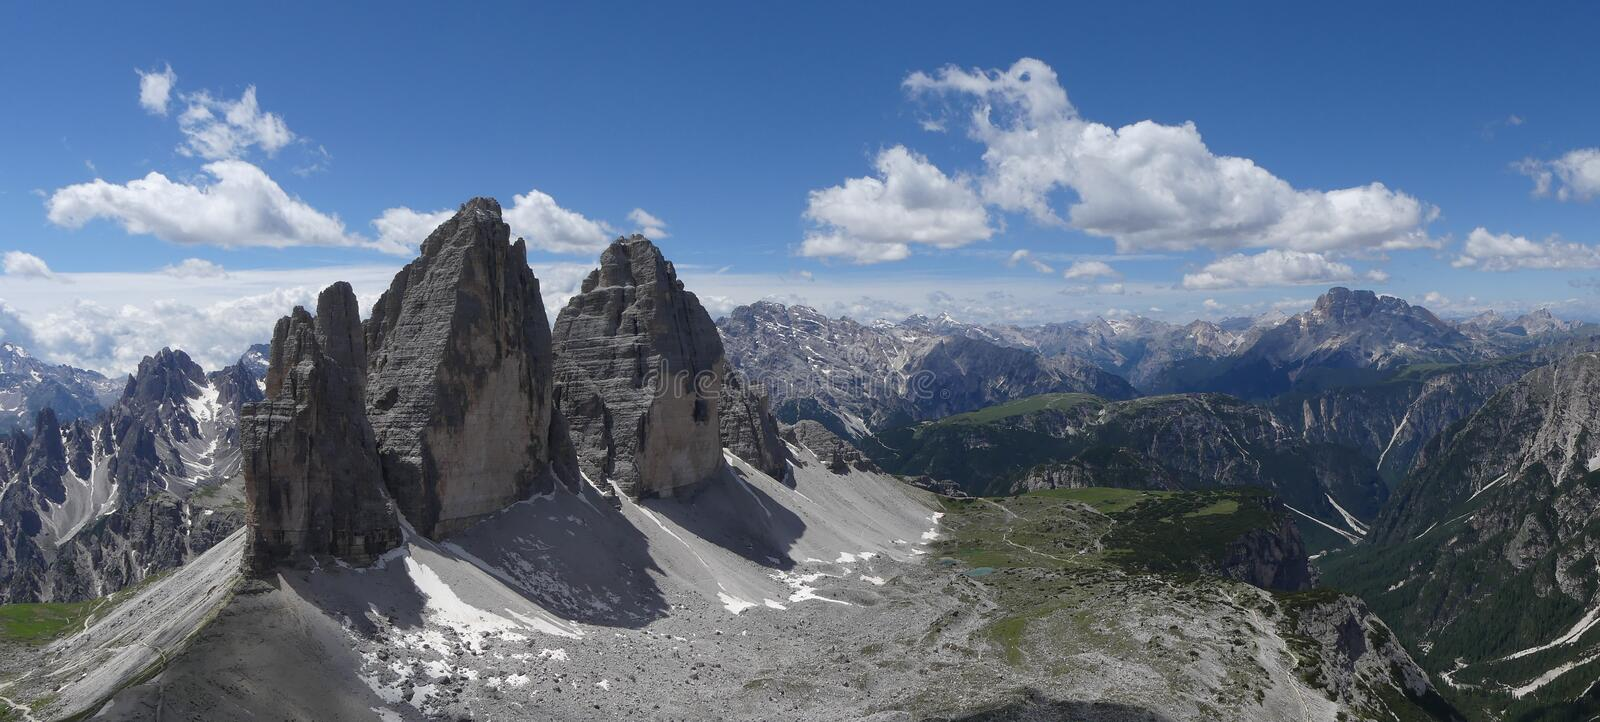 Tre Cime di Lavaredo and amazing views royalty free stock image